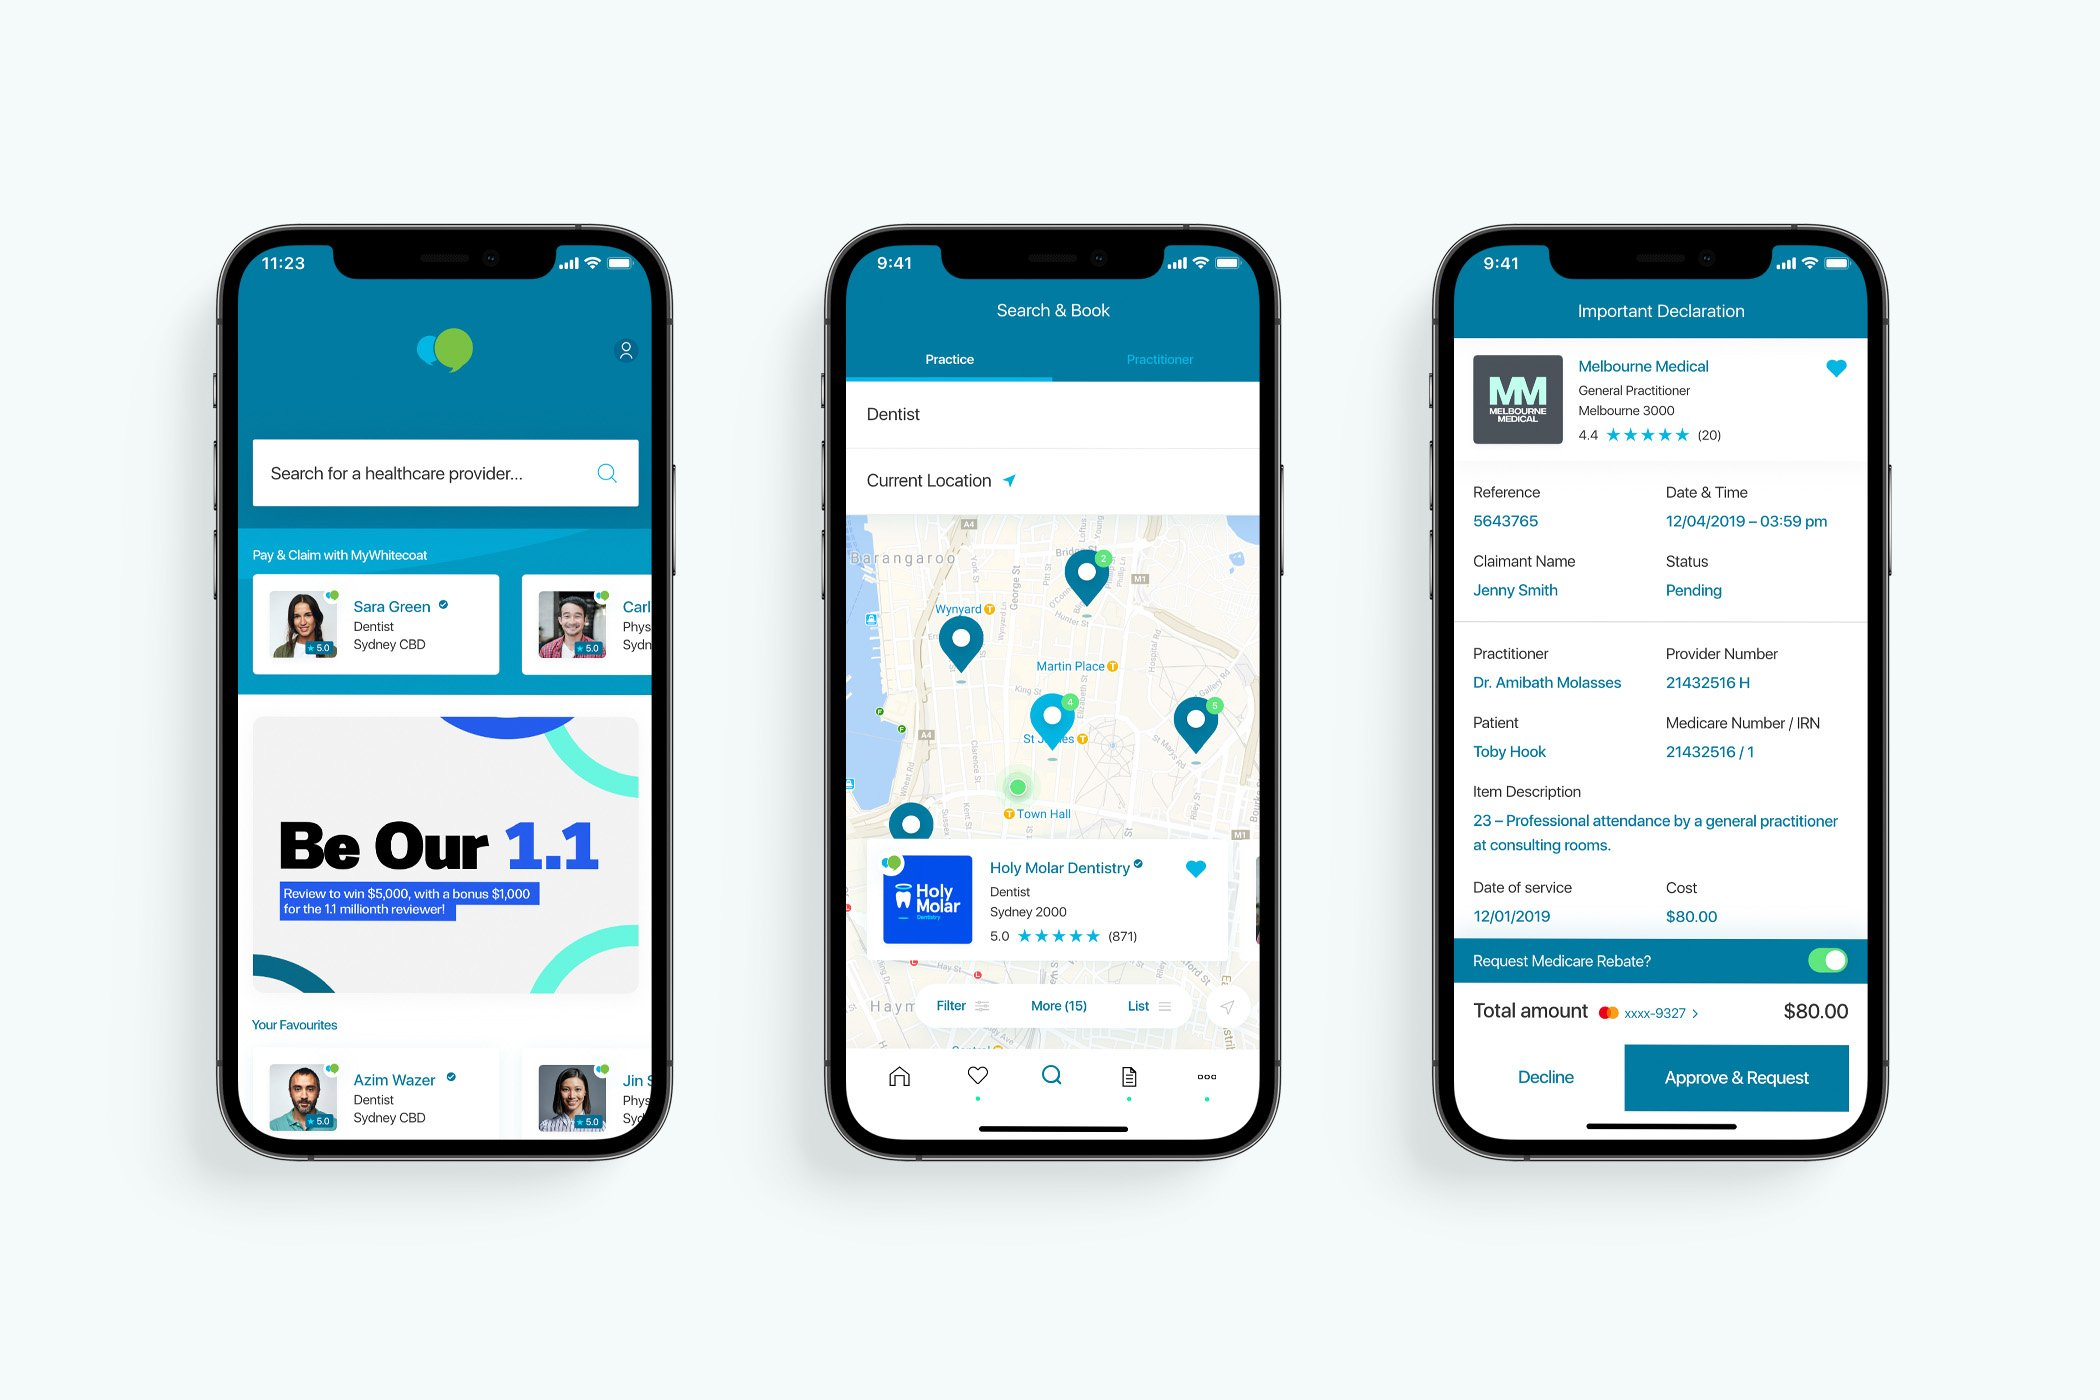 MyWhitecoat - App Overview screens